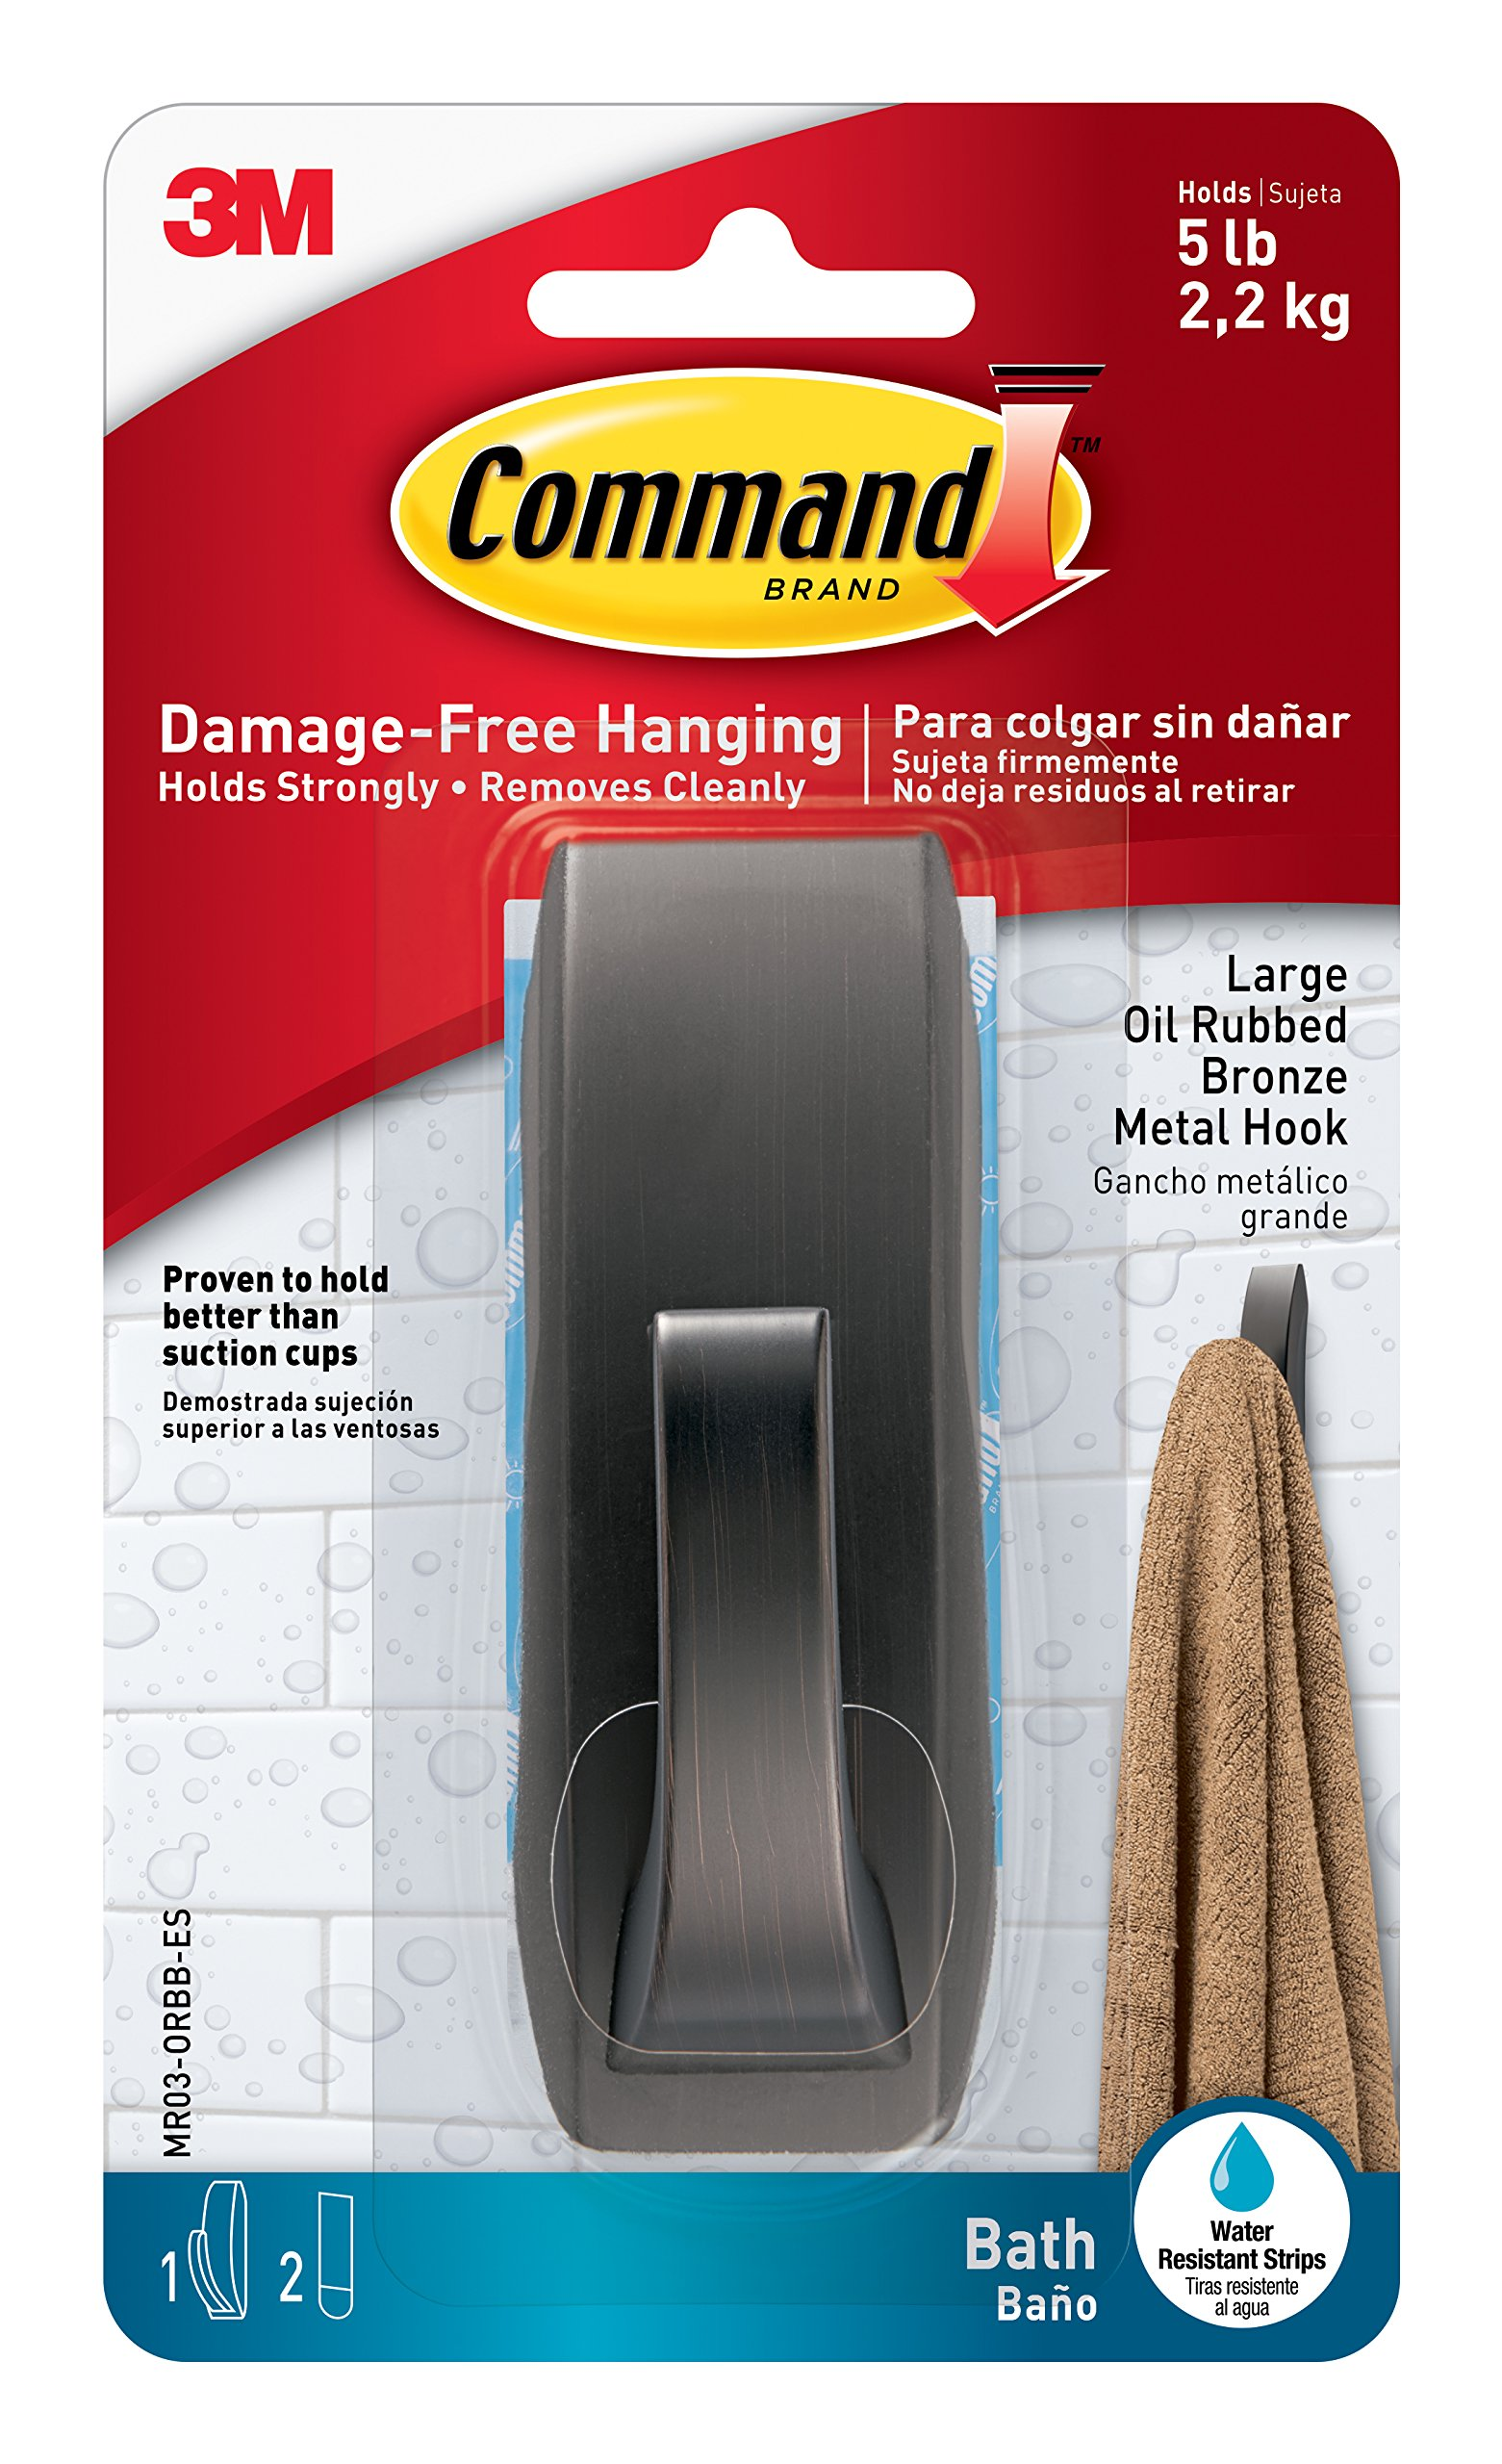 Command Modern Reflections Metal Bath Hook, Large, Oil Rubbed Bronze, 1-Hook with Water-Resistant Strips (MR03-ORBB-ES)